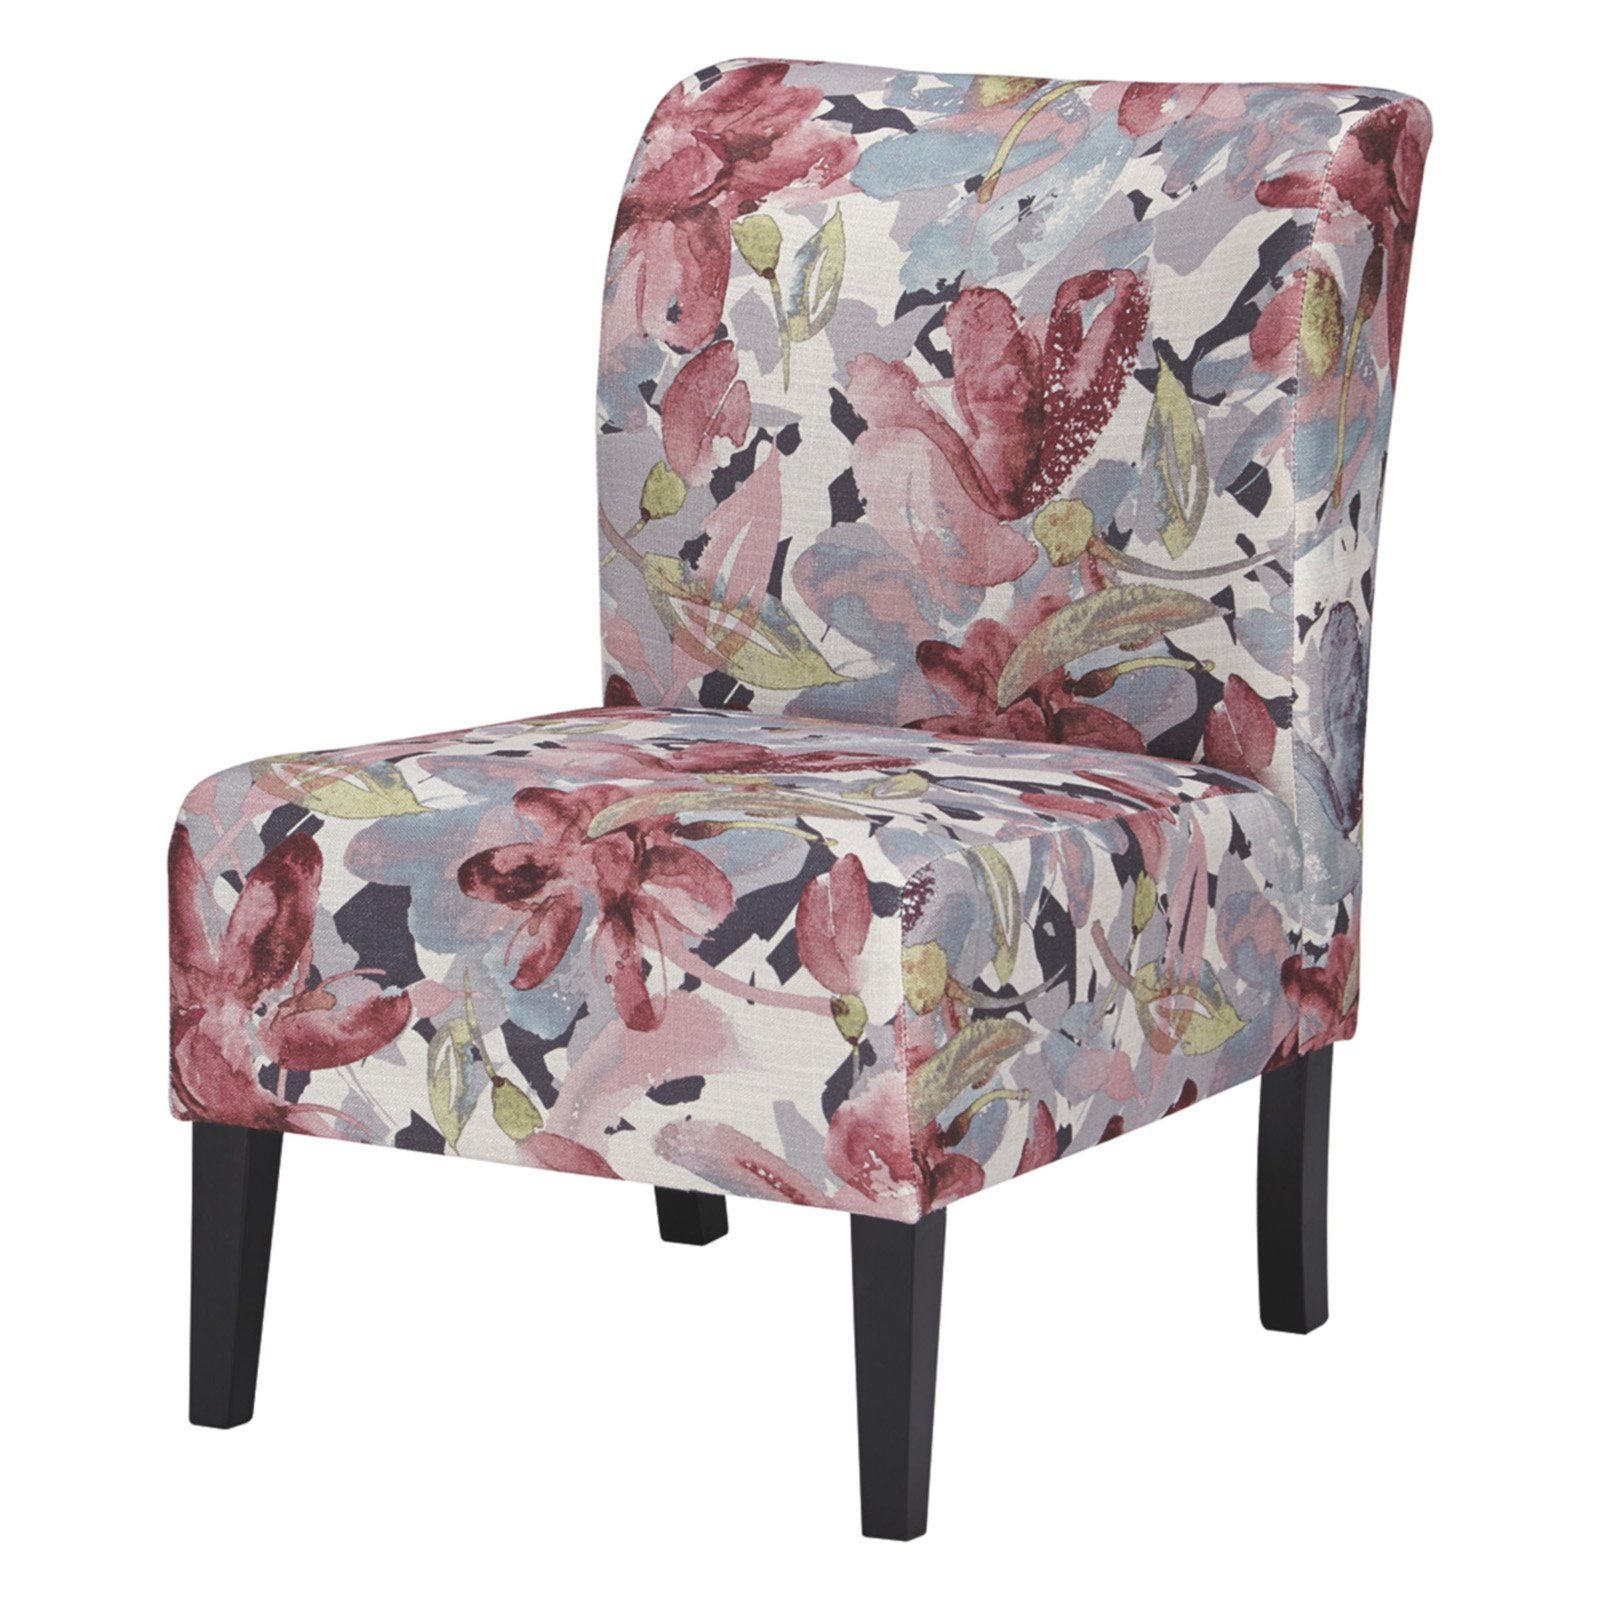 Signature Design By Ashley Triptis Accent Chair Accent Chairs Ashley Furniture Furniture